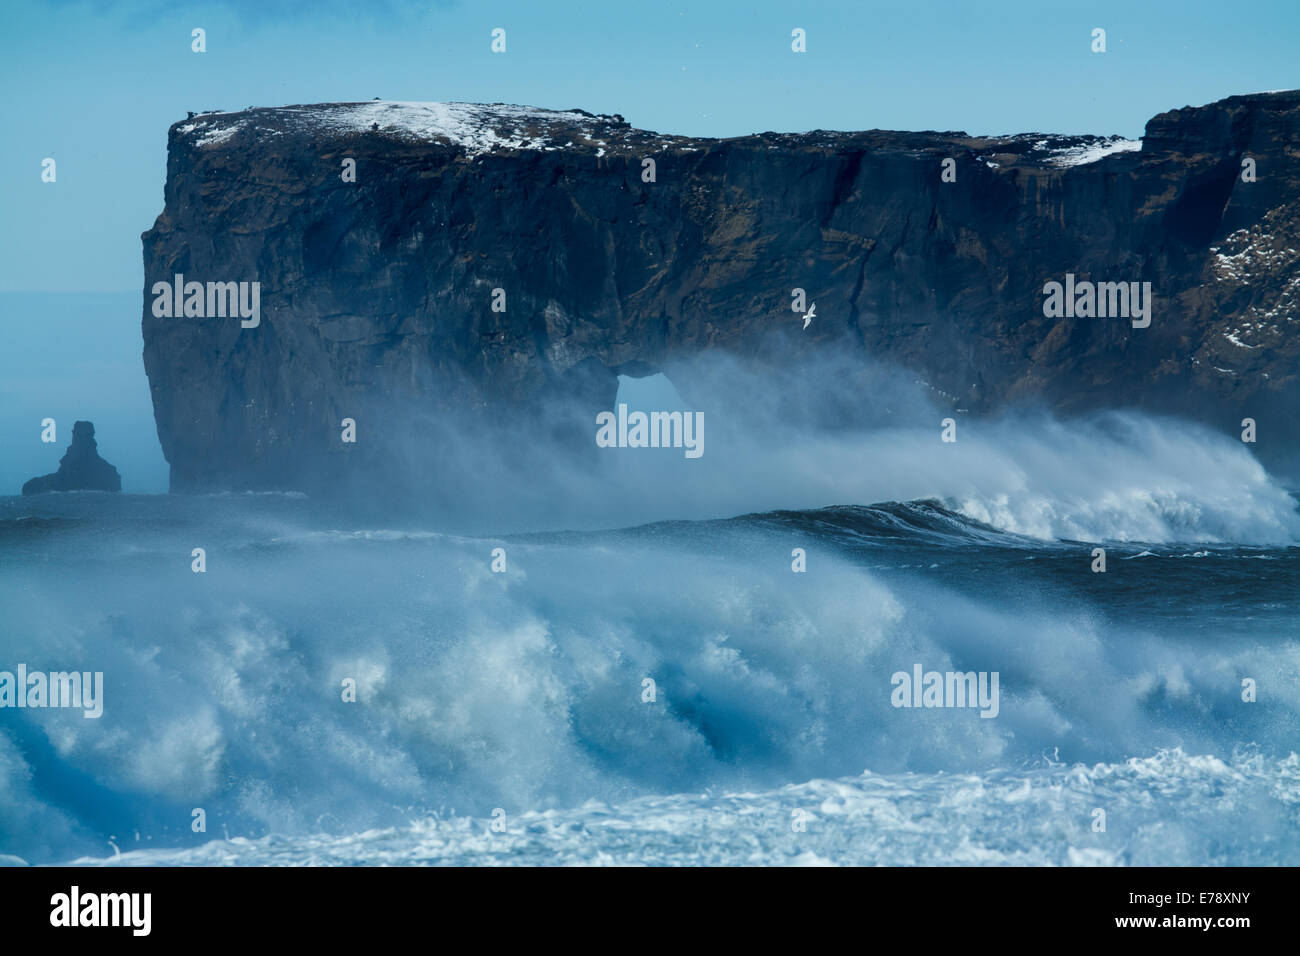 waves breaking on Renisfjara beach in front of the Dyrhólaey headland, southern Iceland - Stock Image